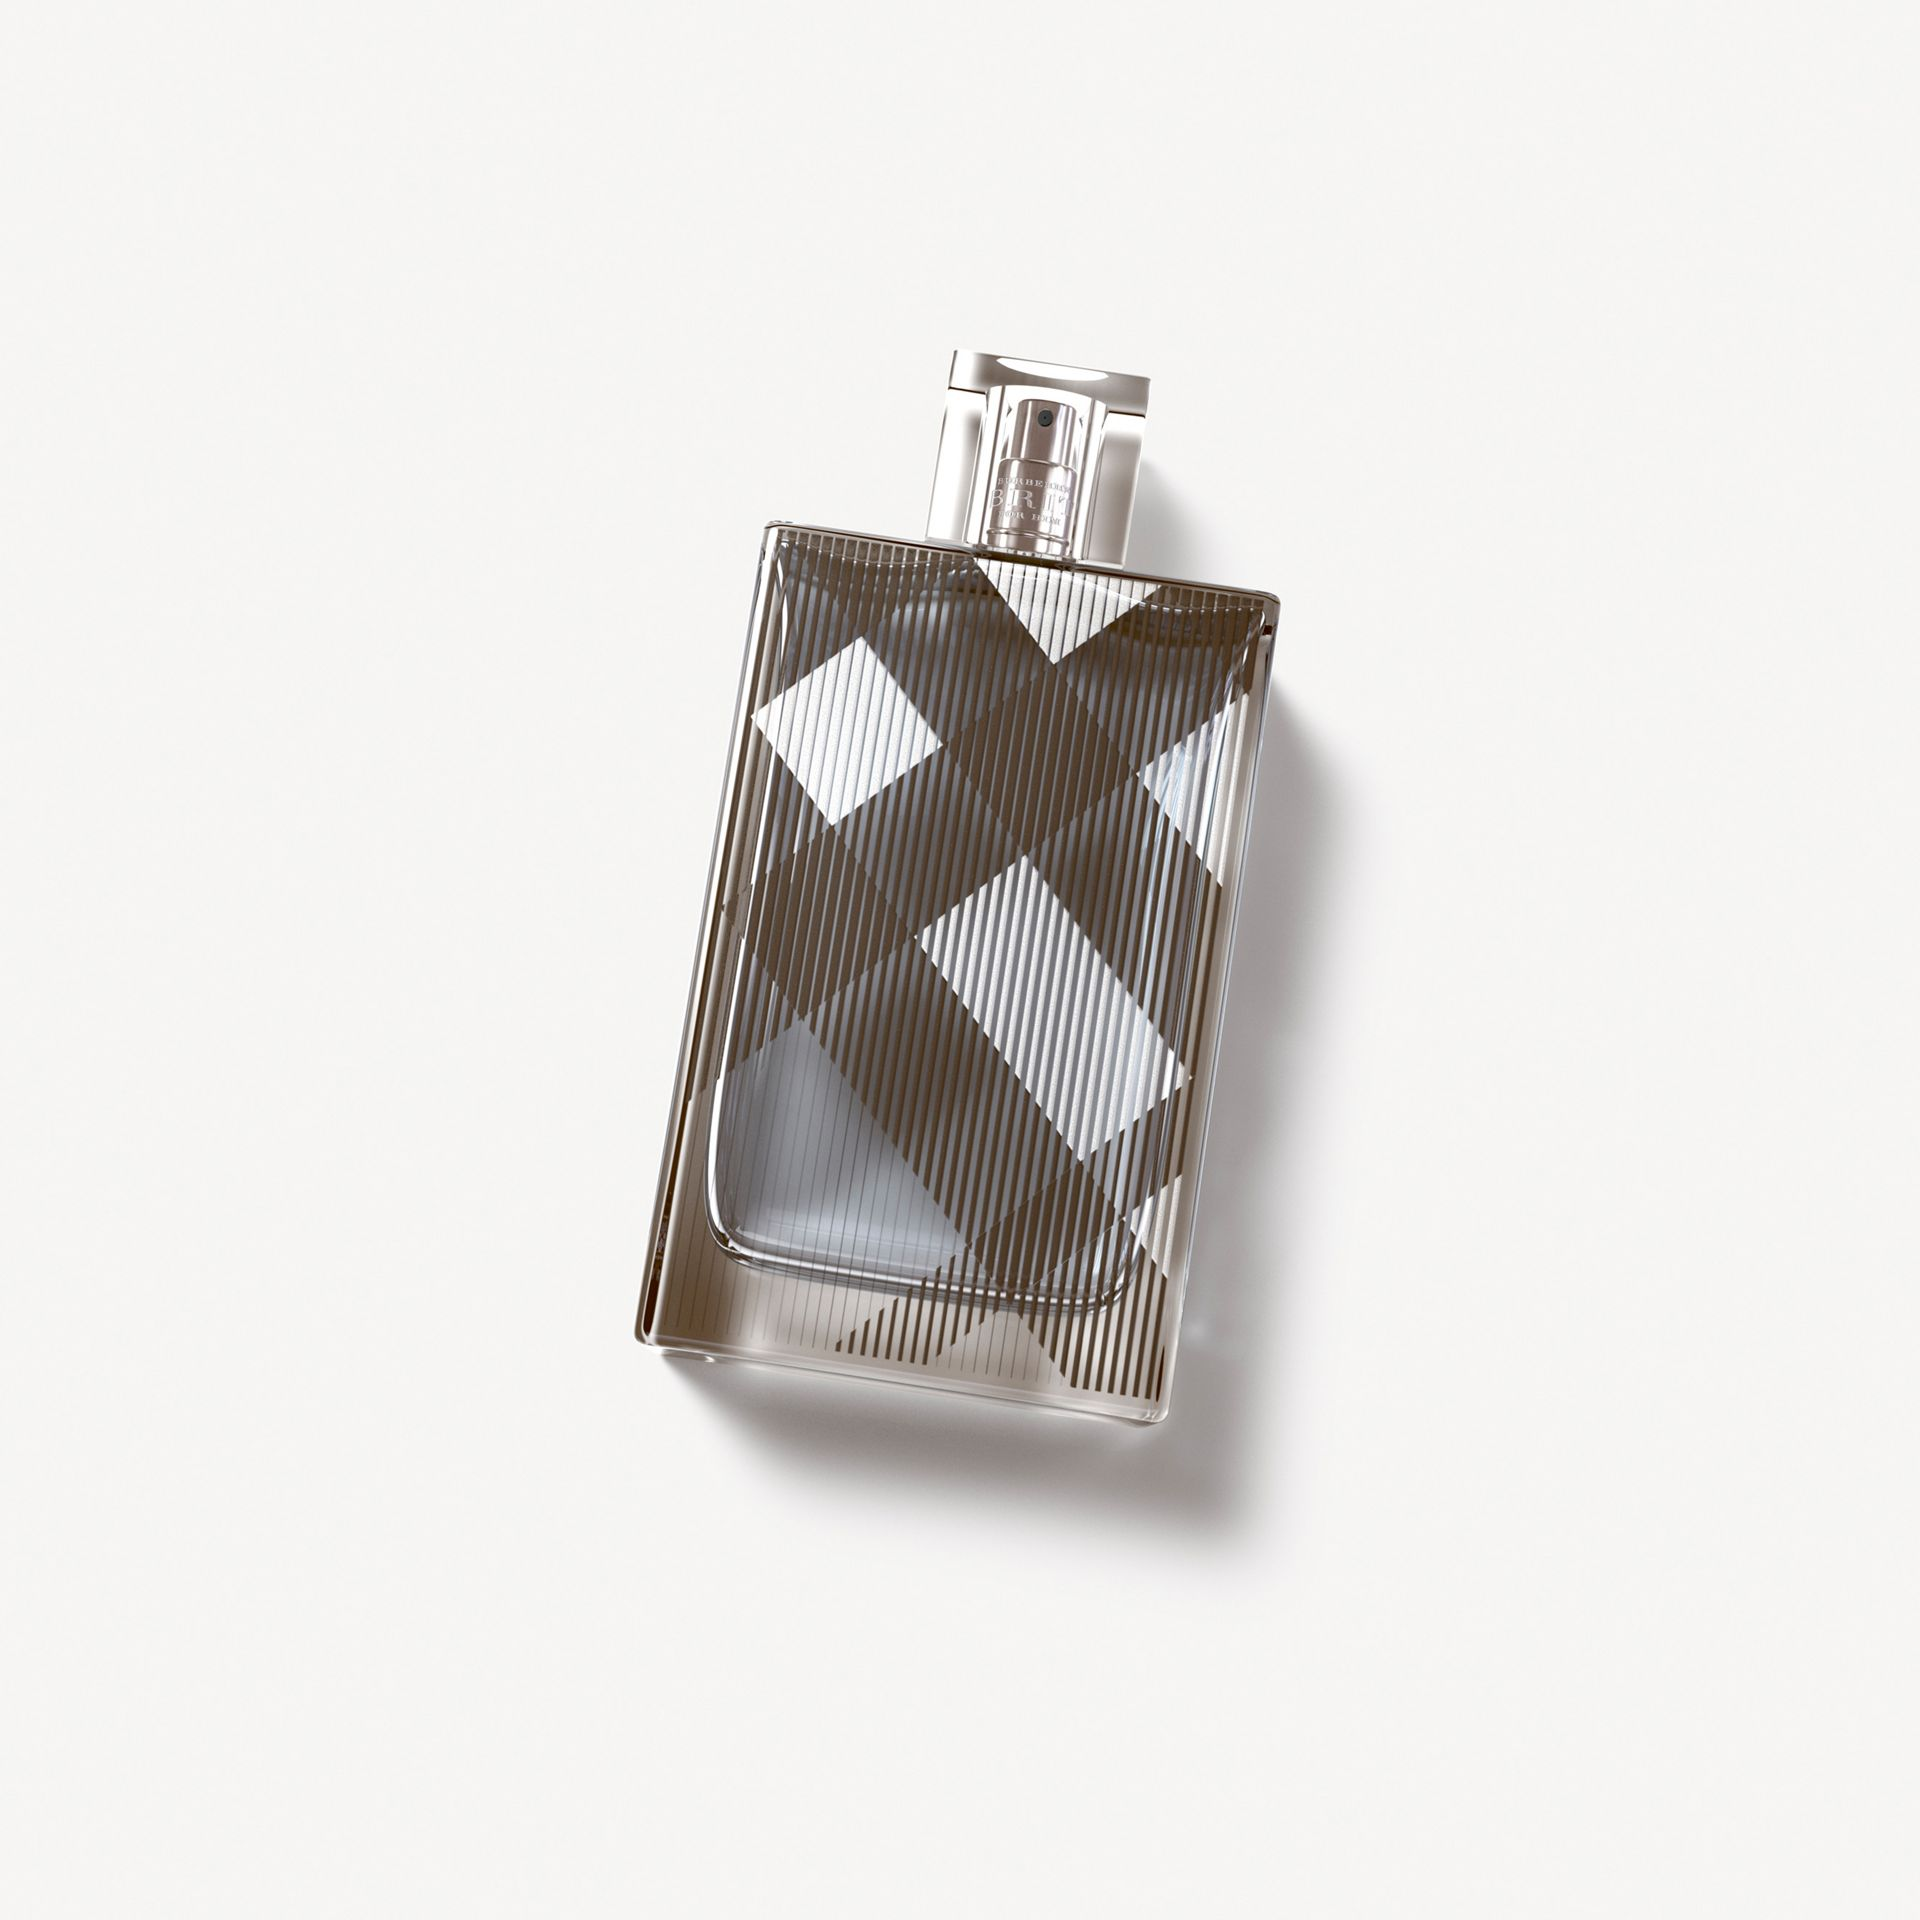 Burberry Brit For Him Eau de Toilette 100 ml - Galerie-Bild 1